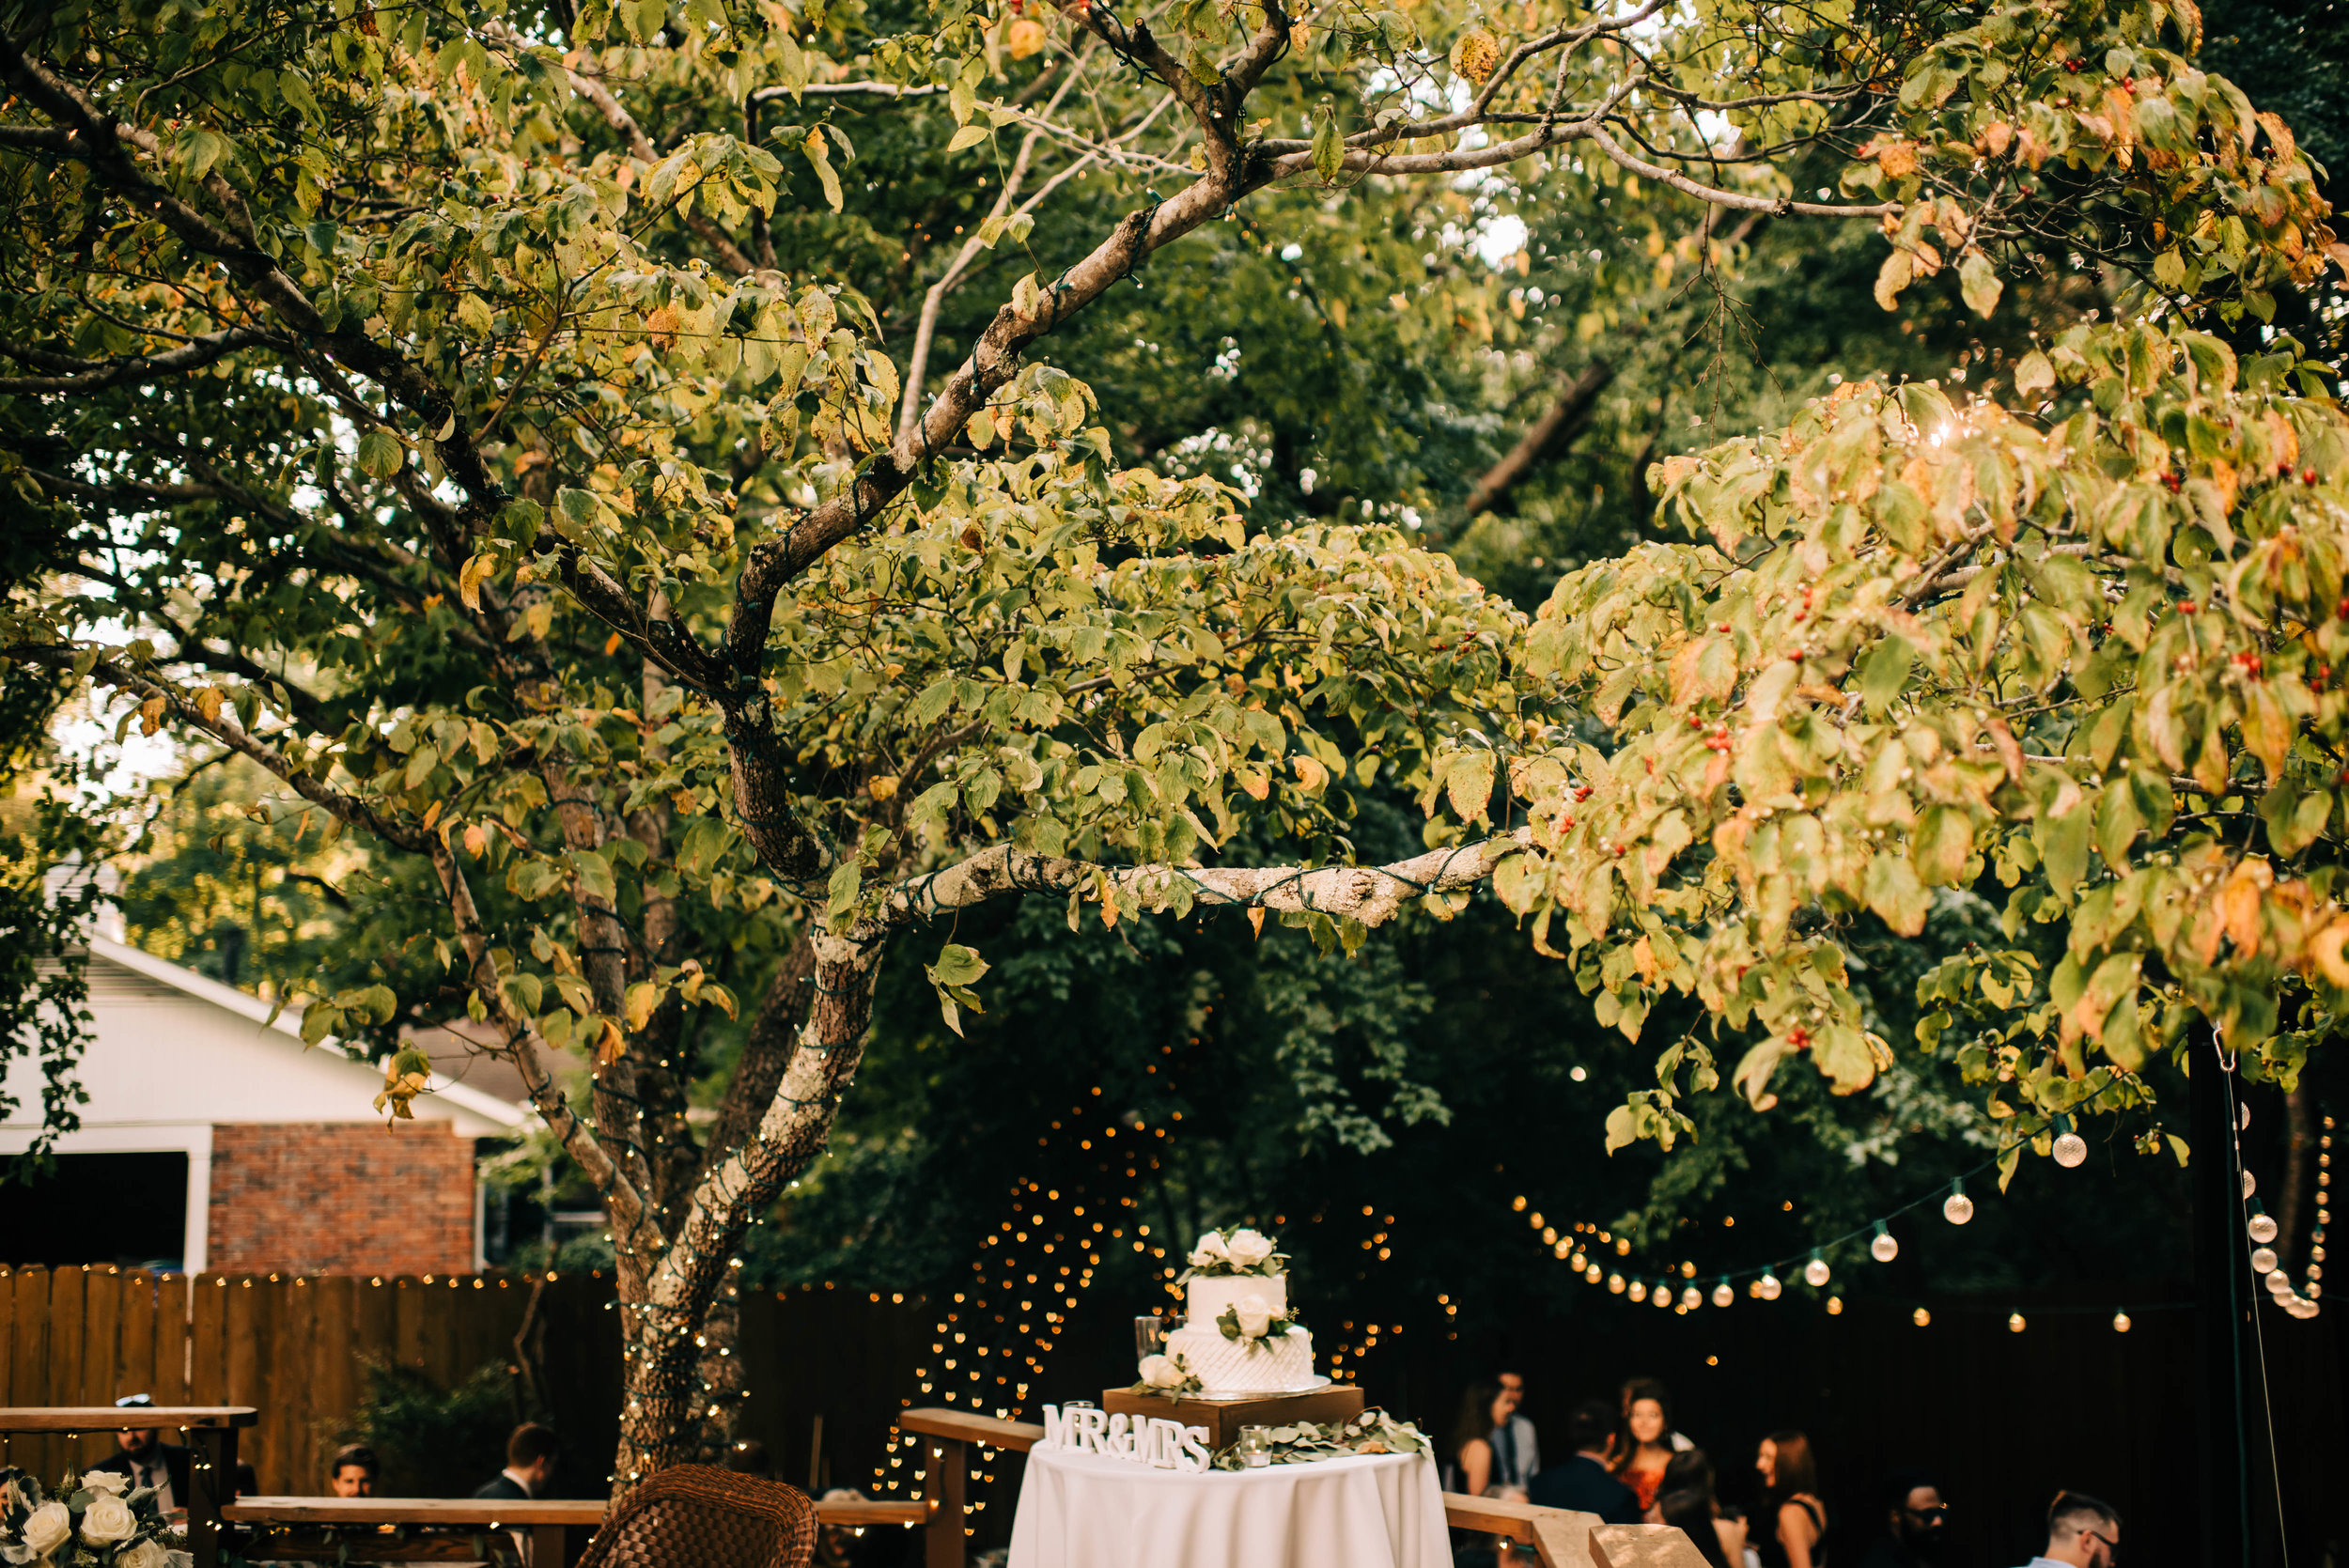 atlanta backyard wedding bay area oakland san francisco engagement wedding nontraditional fun creative eclectic photographer magic-903.jpg